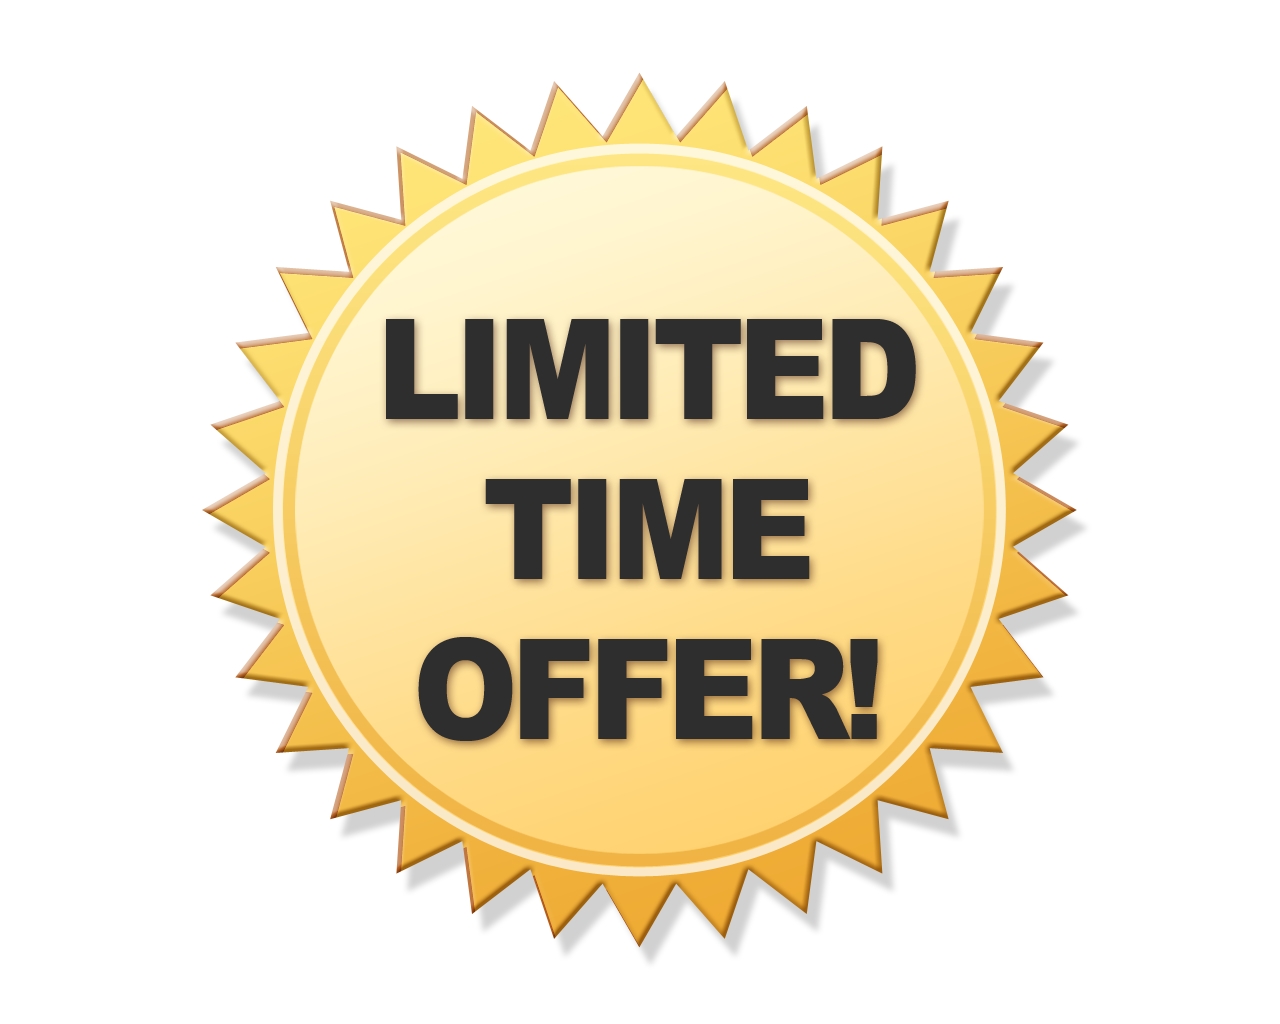 Limited_Time_Offer Gold Stamp